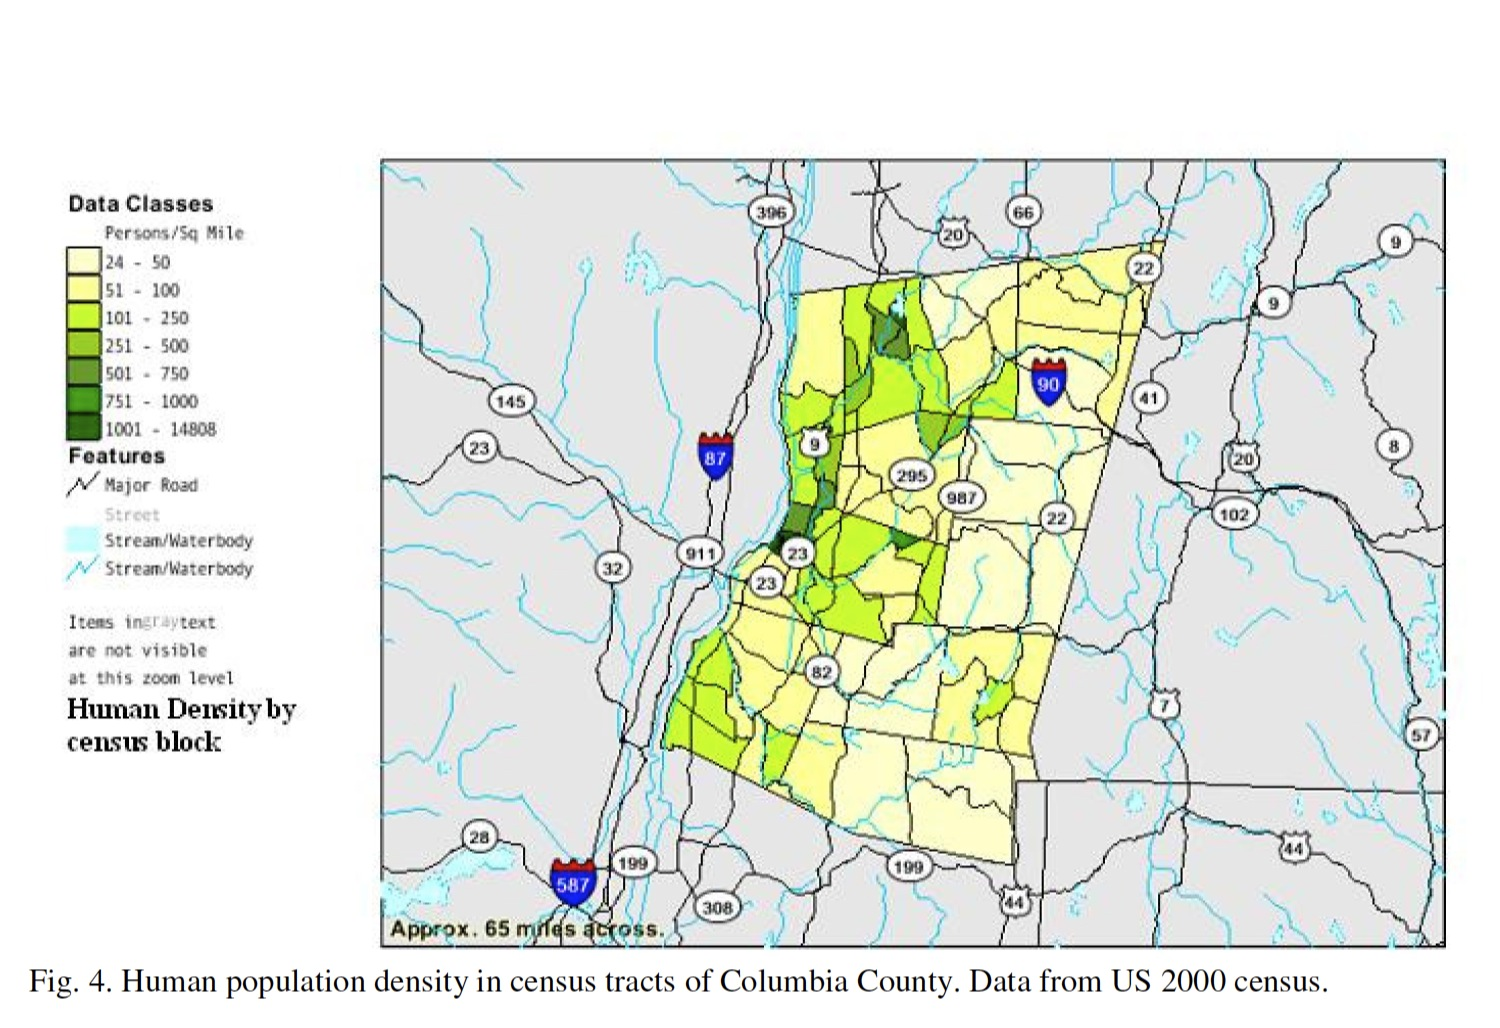 Human Population Density In Columbia County From 2000 Census Map Major Transportation